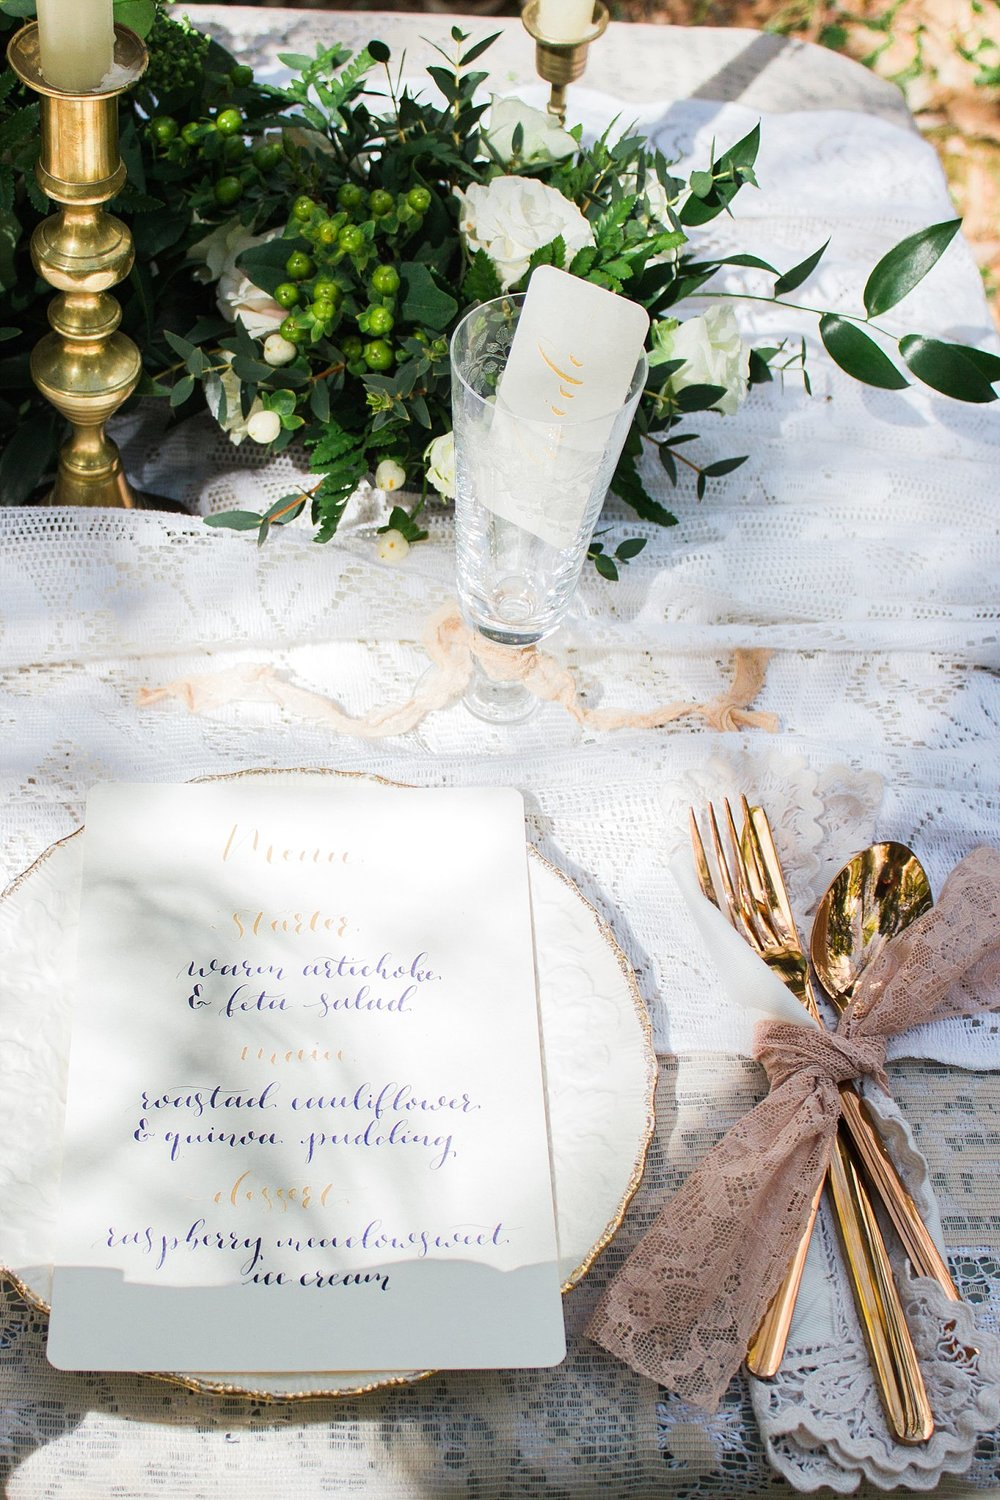 Vintage Amy Wedding Styling-Whimsical Woodland Vintage Wedding Kent-Vintage Calligraphy and Lace Table Setting